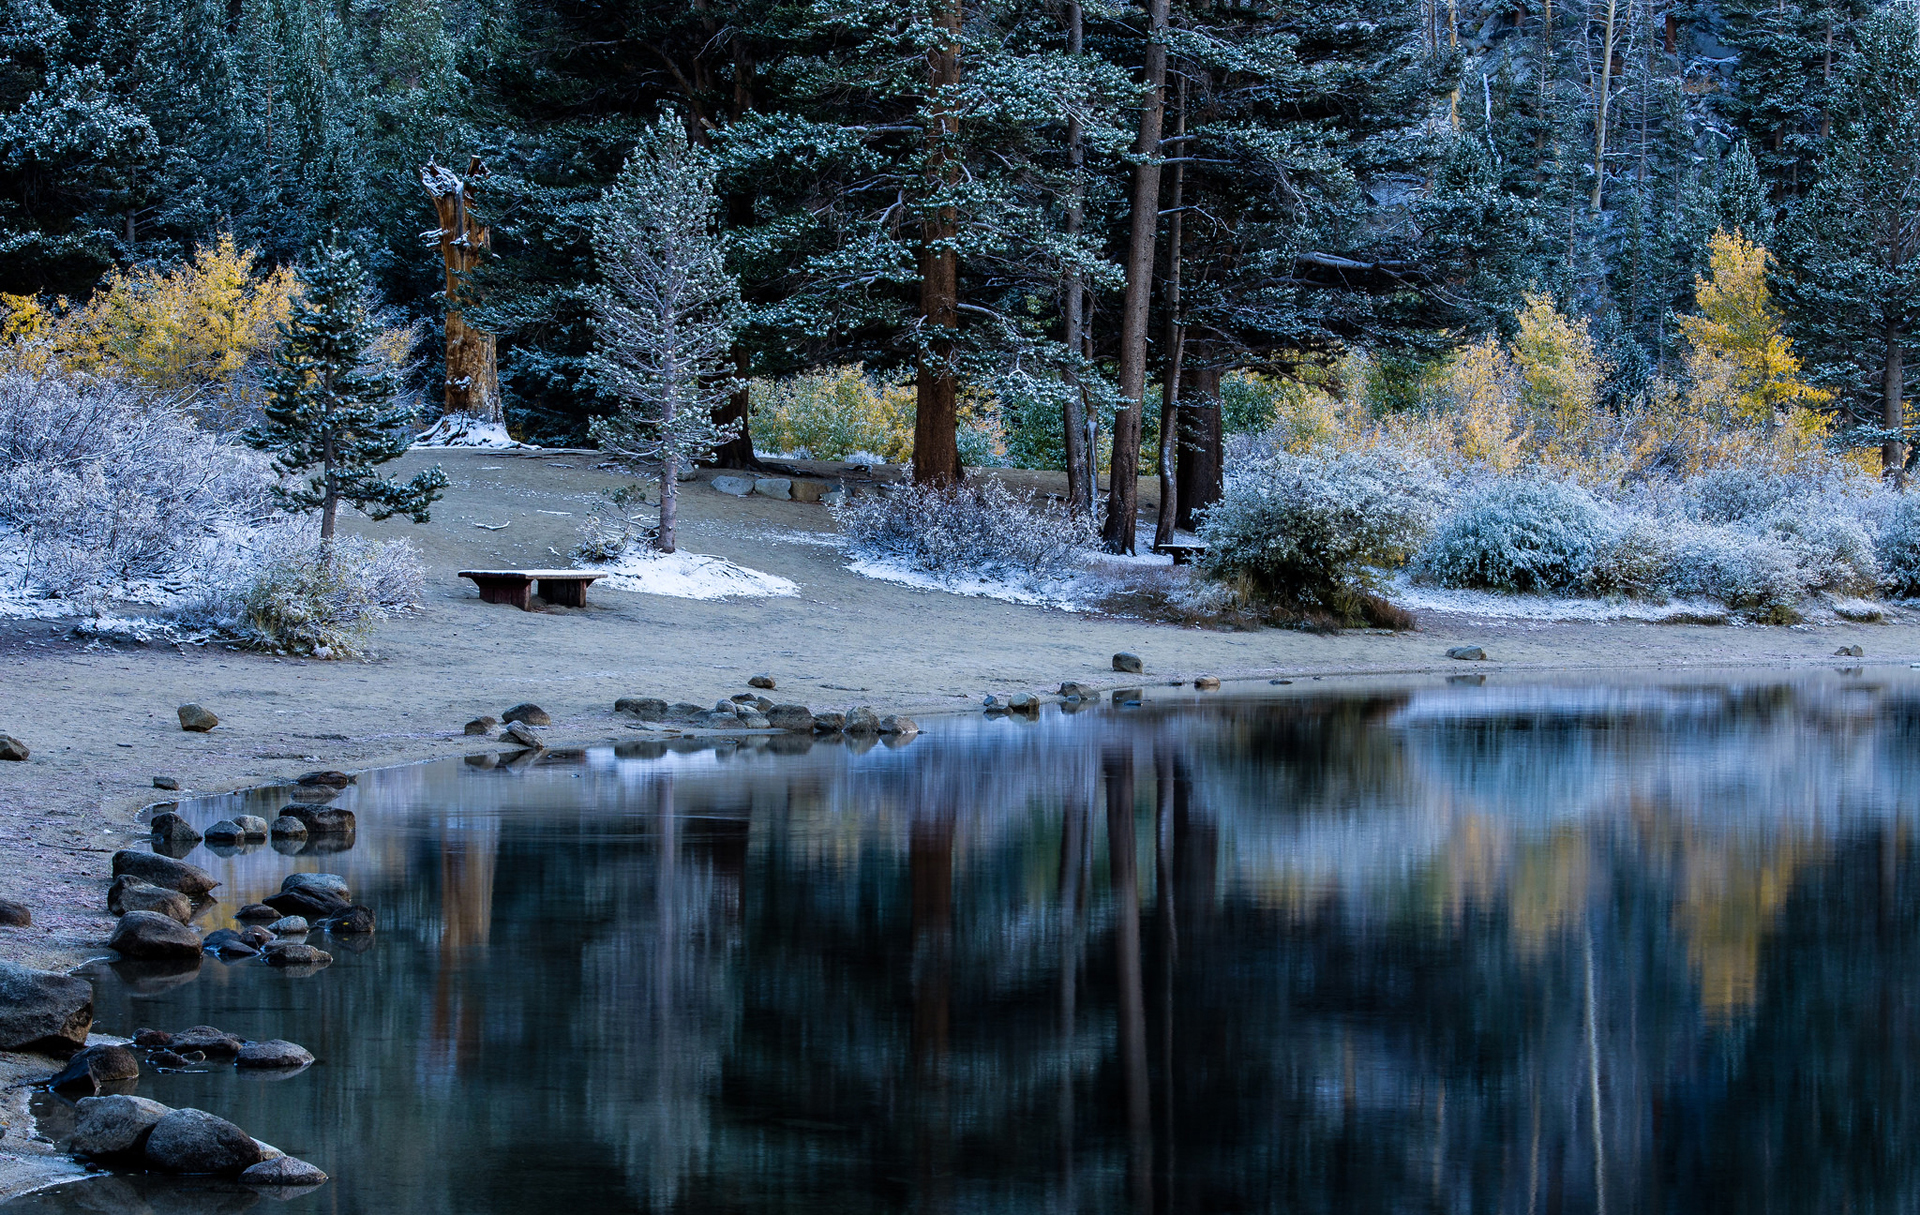 83876 download wallpaper Nature, Rivers, Trees, Lake, Shore, Bank, Forest, Table screensavers and pictures for free